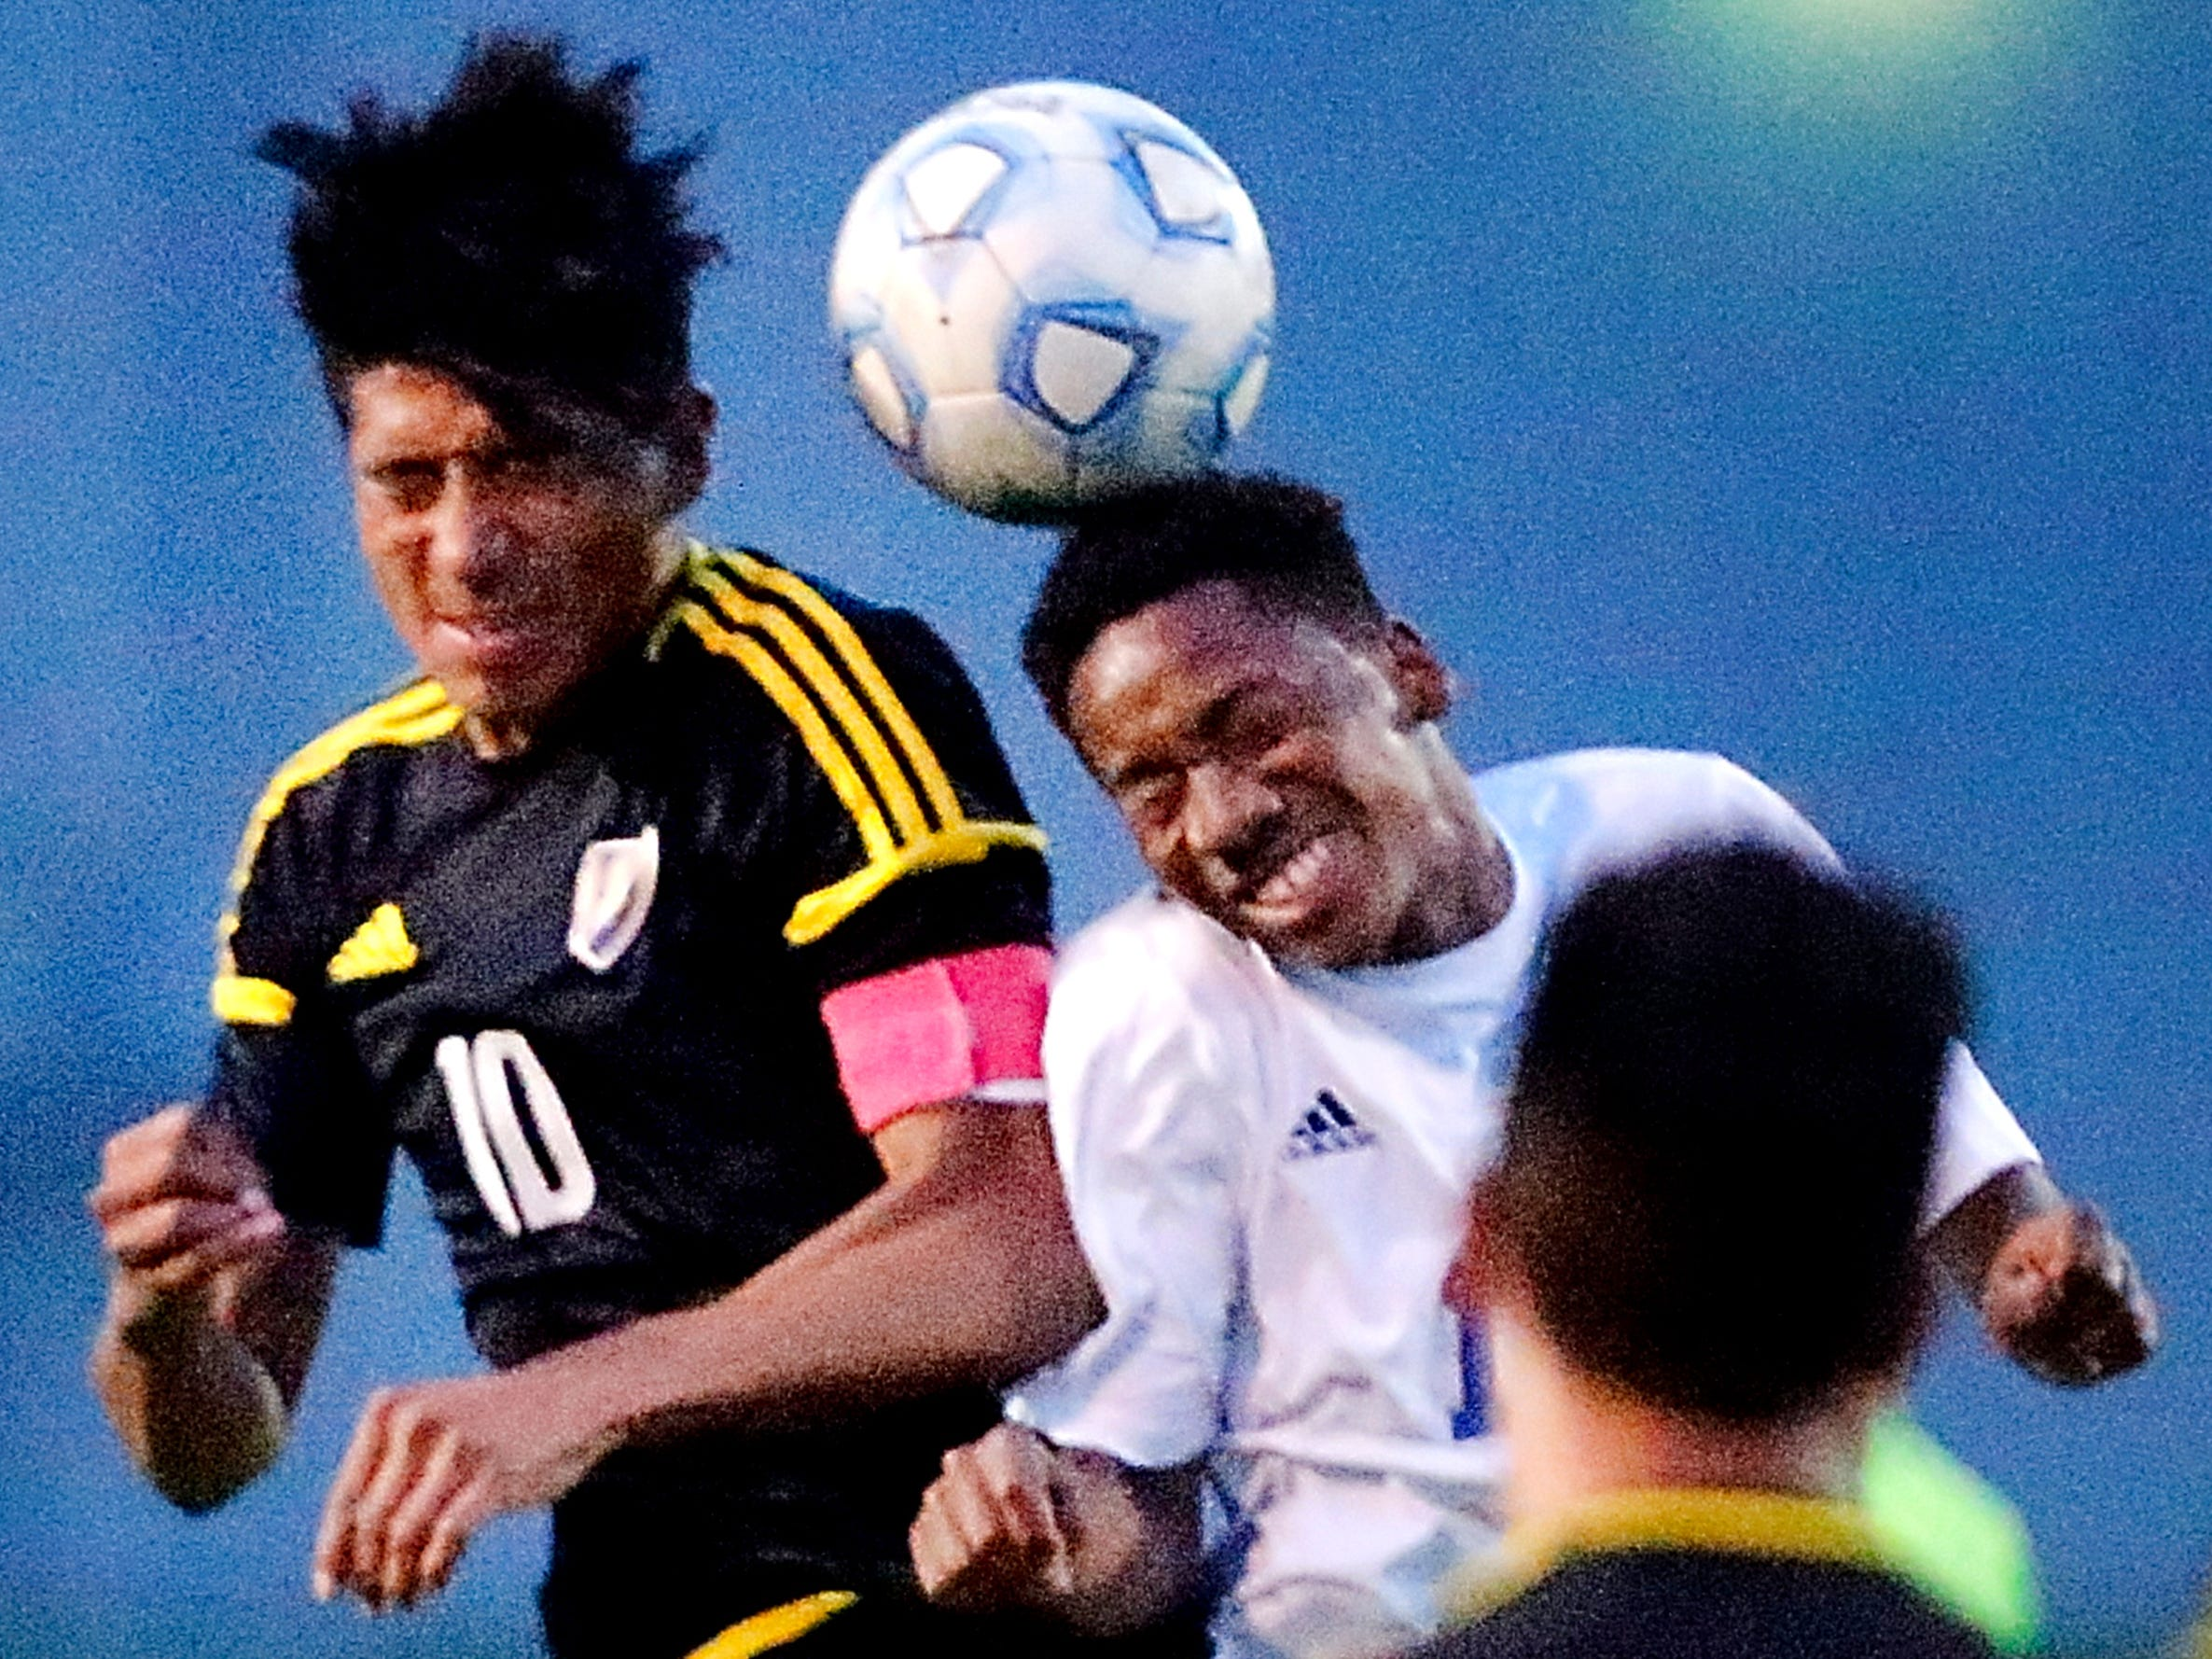 Smyrna's  Juan Cernas (10) and La Vergne's Chadrac Phillipe (16) both try to head the ball  during a soccer match at La Vergne, on Thursday, May 3, 2018. Final score 1 to 1.